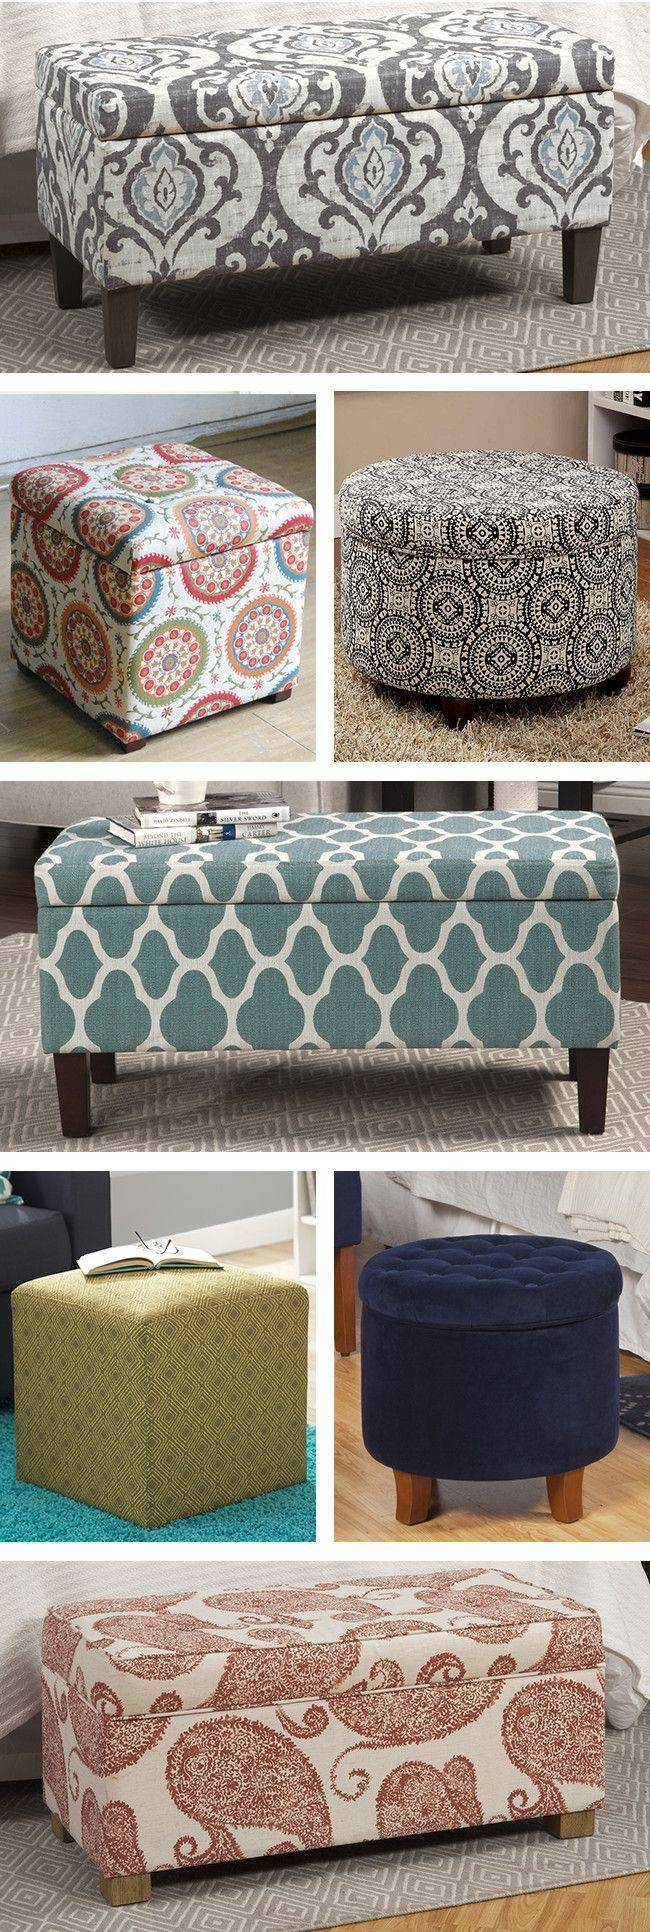 279 Best Ottoman - Pouf - Foot Stool + Images On Pinterest within Footstool Pouffe Sofa Folding Bed (Image 1 of 25)